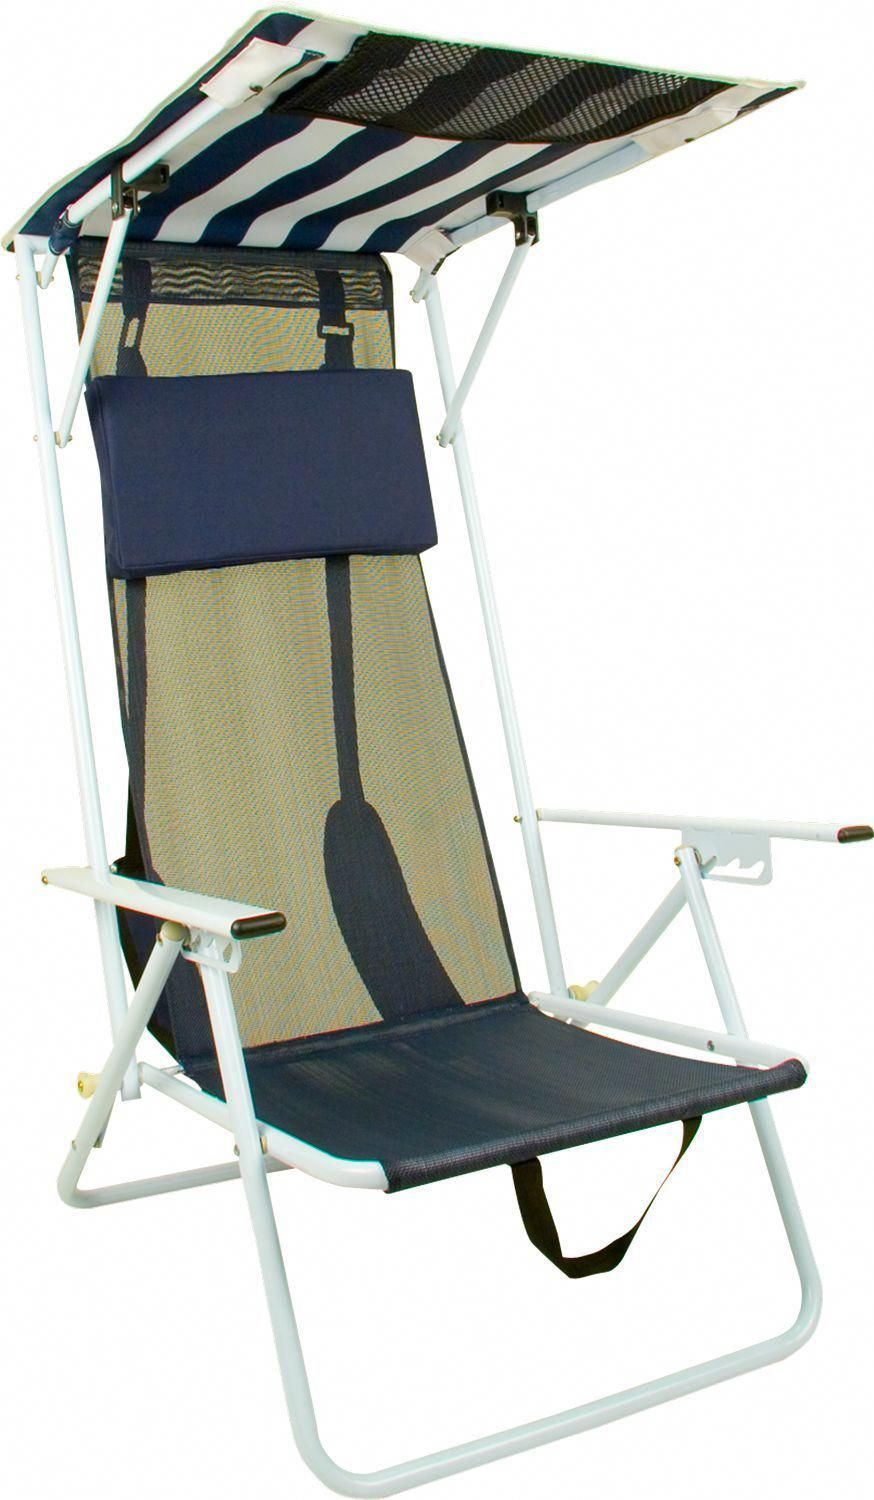 strongback chairs canada target stacking quik shade beach chair campingchairs camping in utah